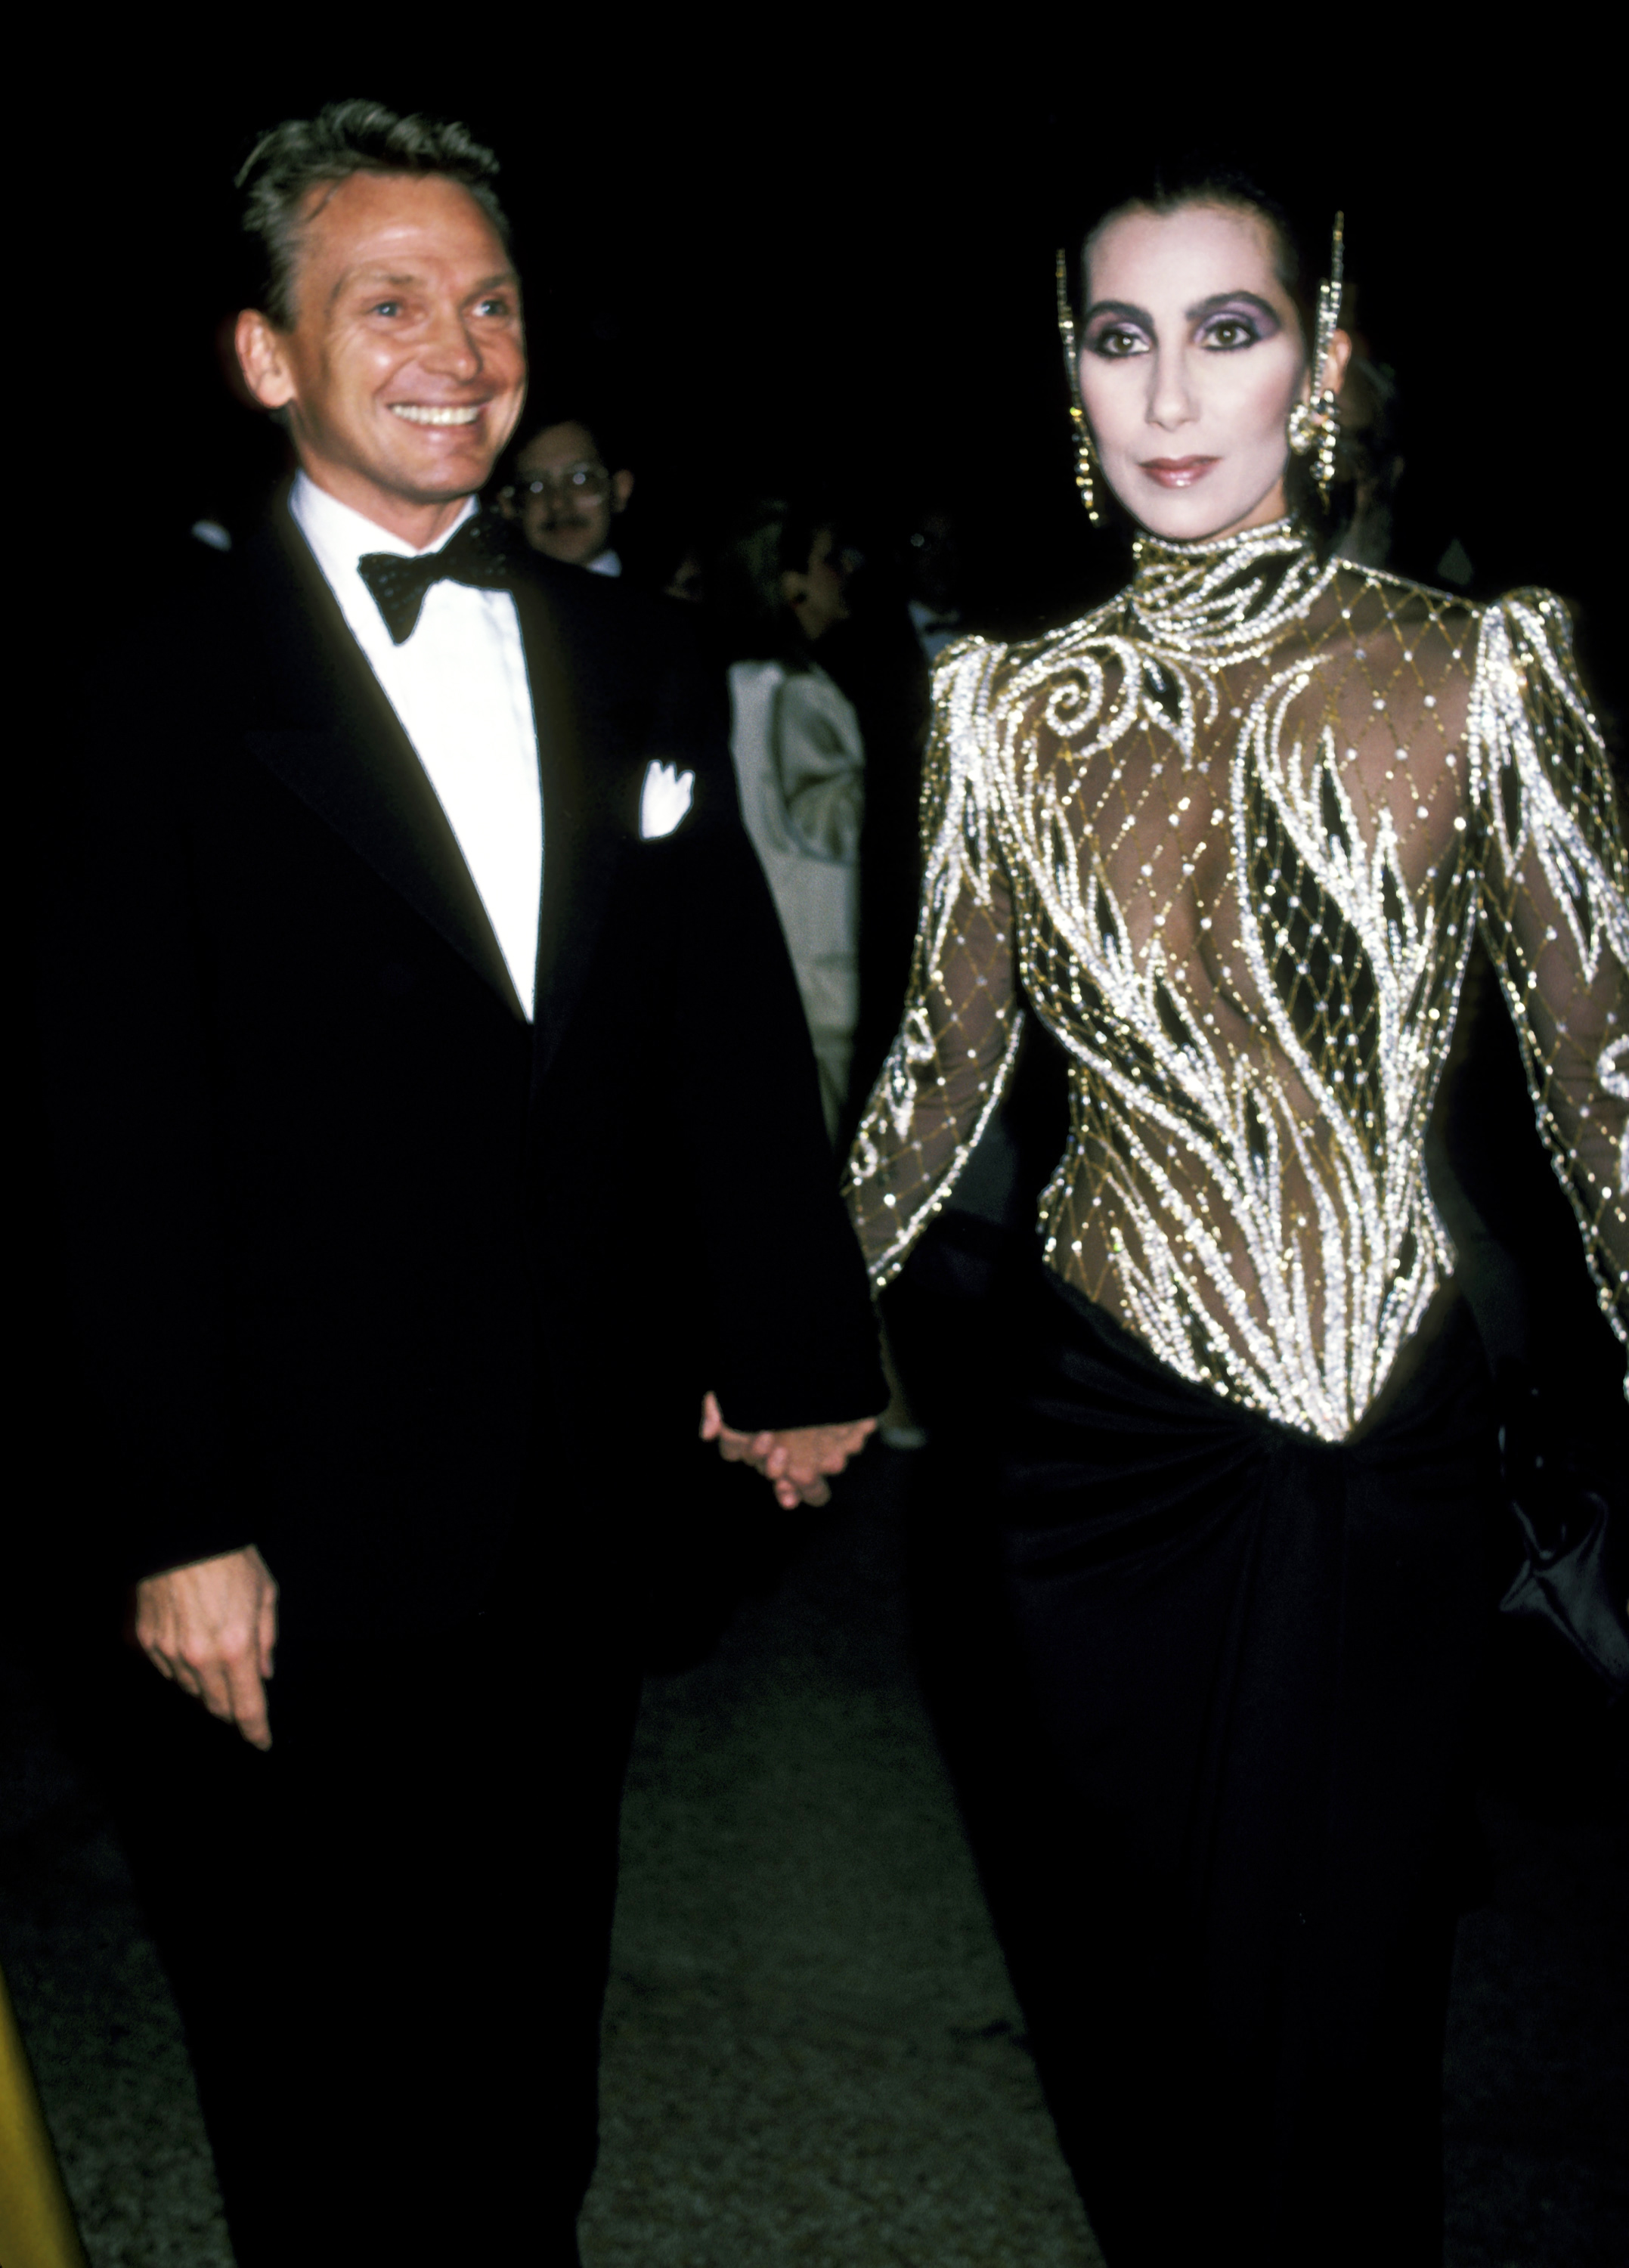 Designer and longtime collaborator Bob Mackie and Cher attend the Metropolitan Museum's Costume Institute Gala in New York City on Dec. 9, 1985.